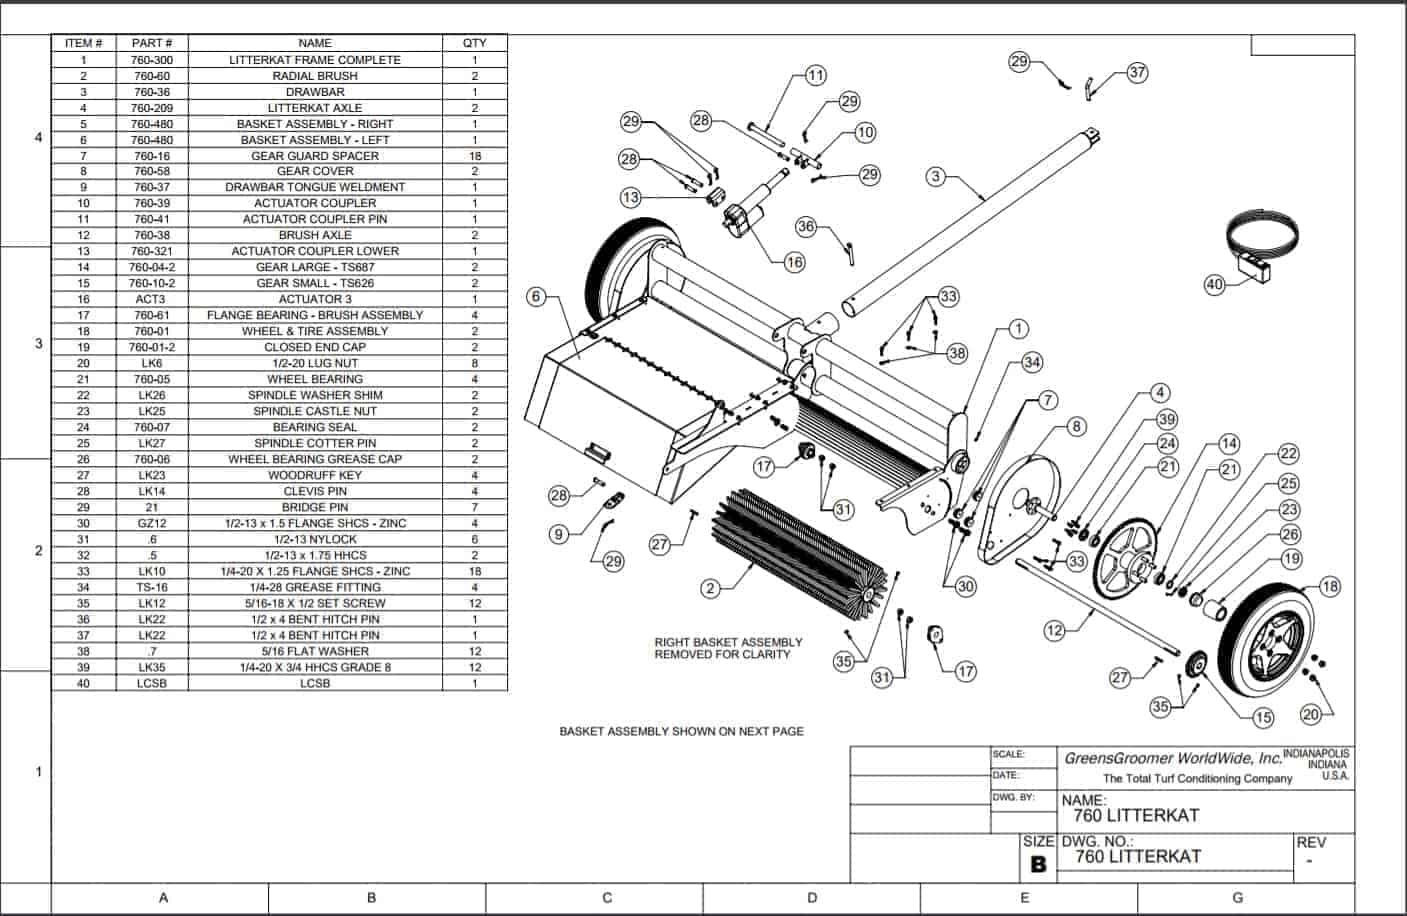 Replacement Parts Diagram for the Turf Sweeper